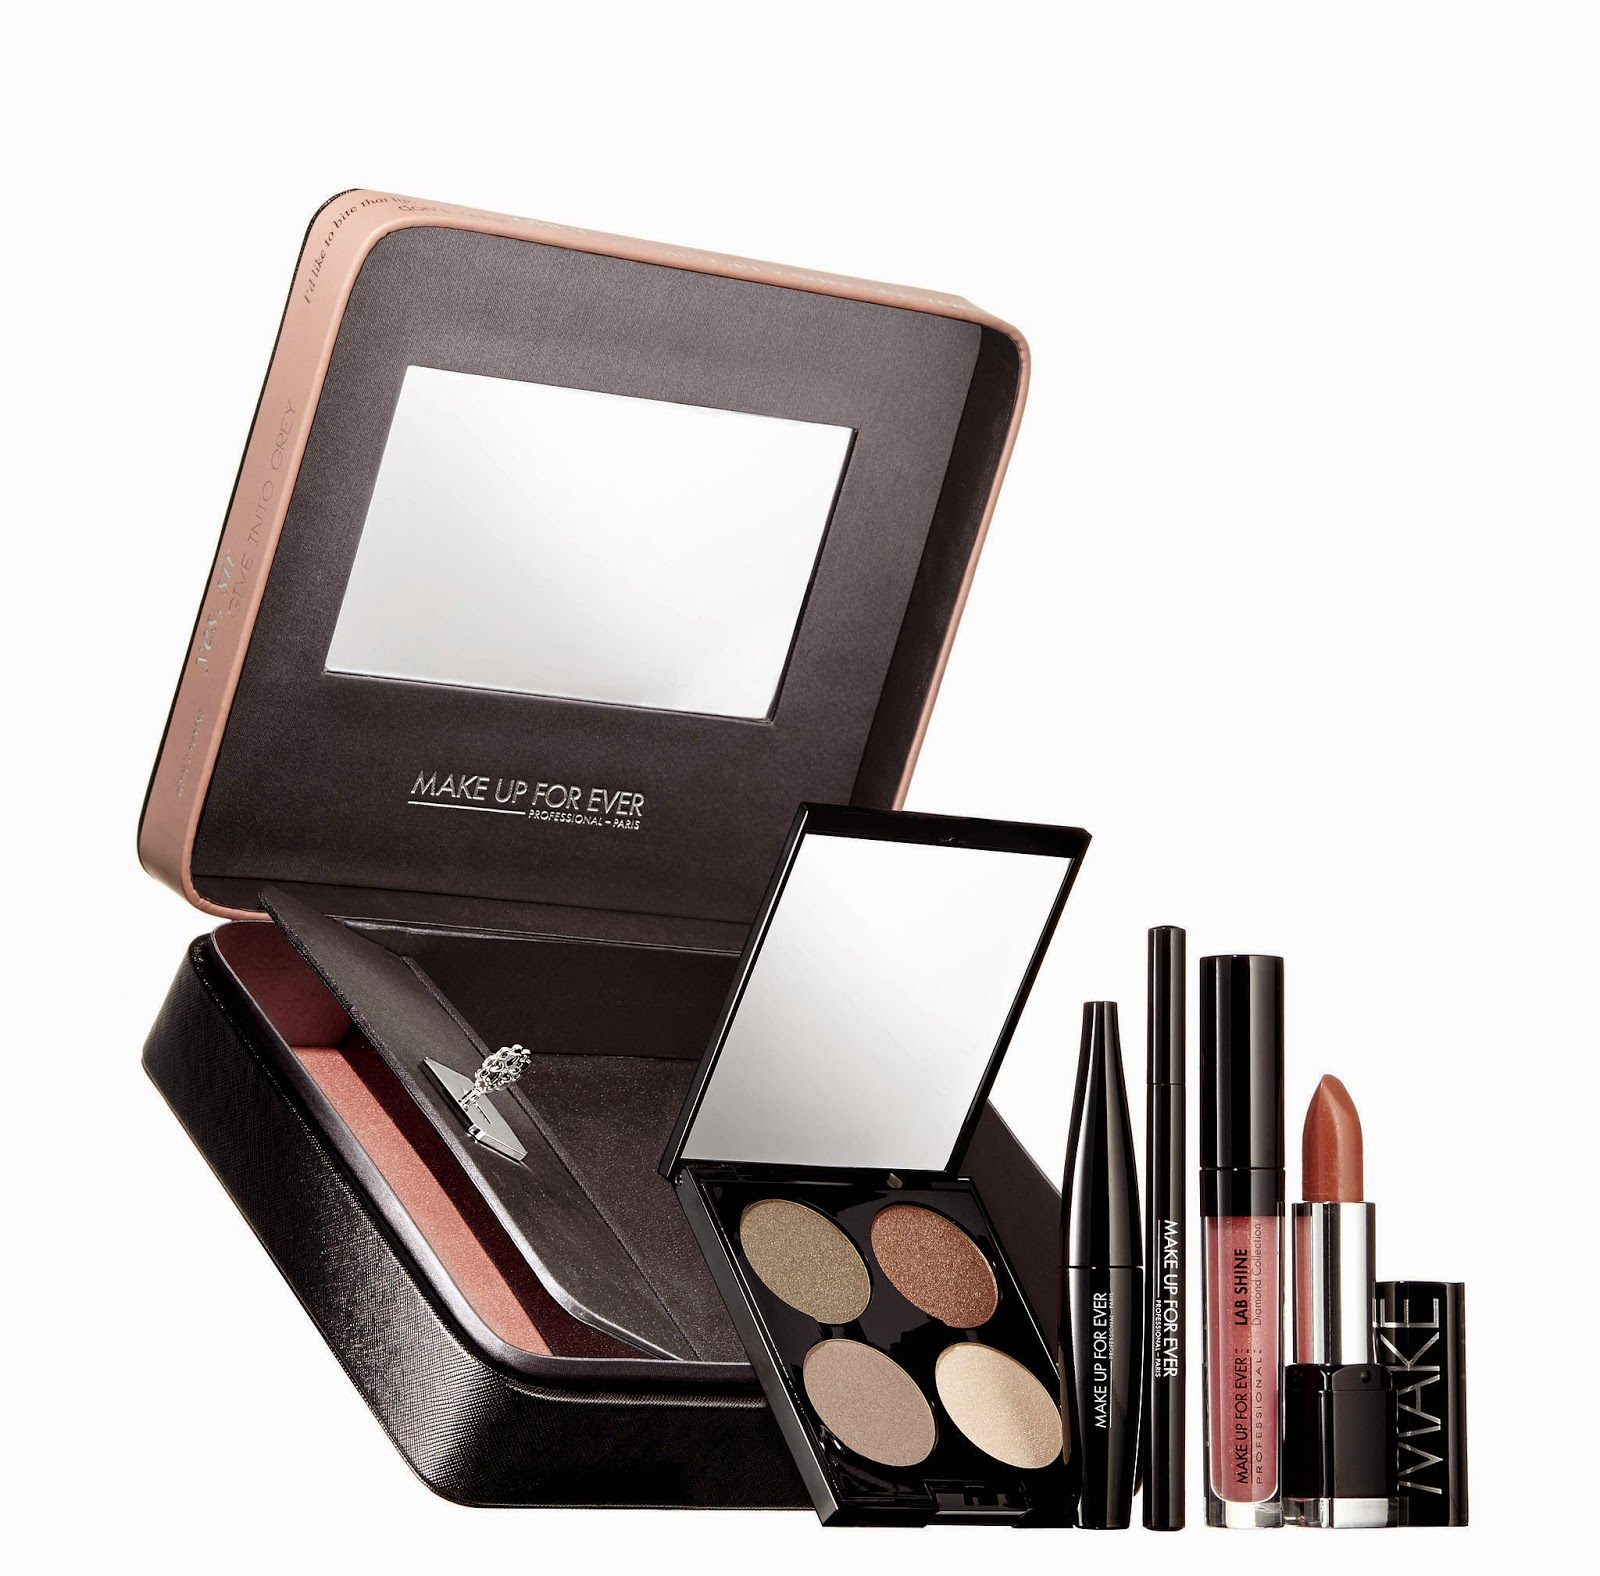 Make Up For Ever, Fifty Shades of Grey Collectio, Give Me Boxed Set